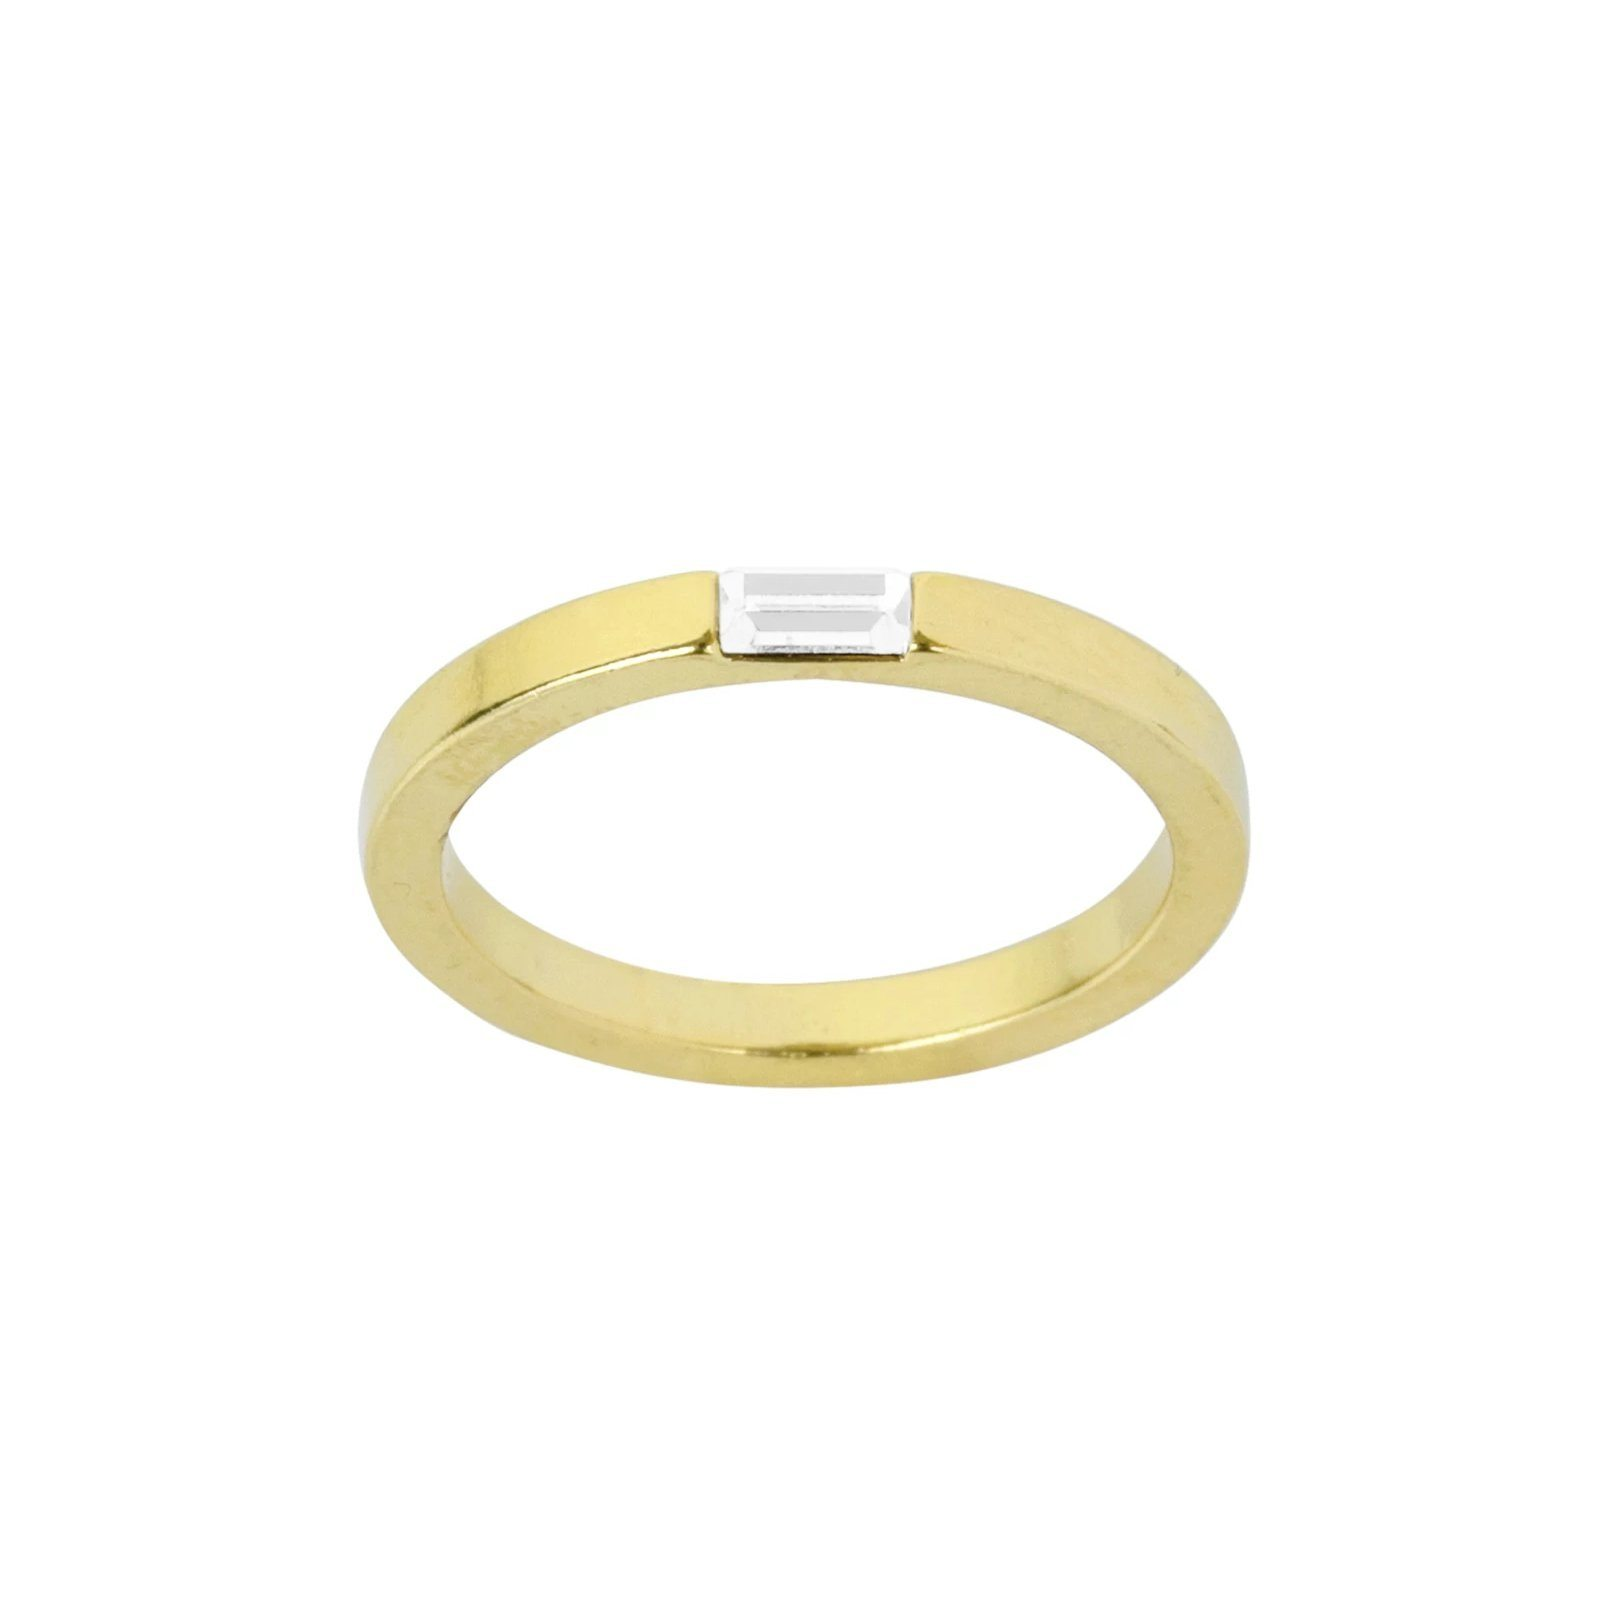 Up close image of Baguette ring against white background.